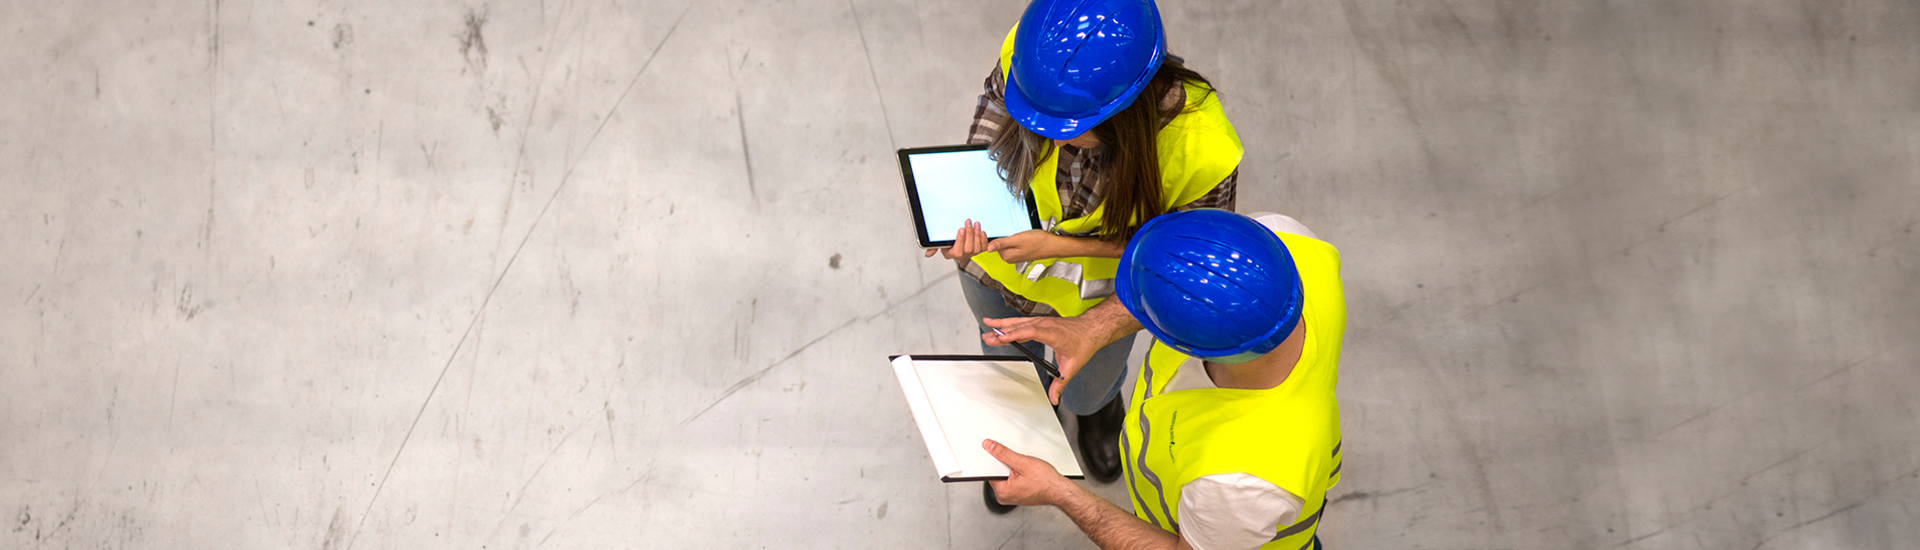 Are You Including These 3 Things on Your Manufacturing Job Posts?